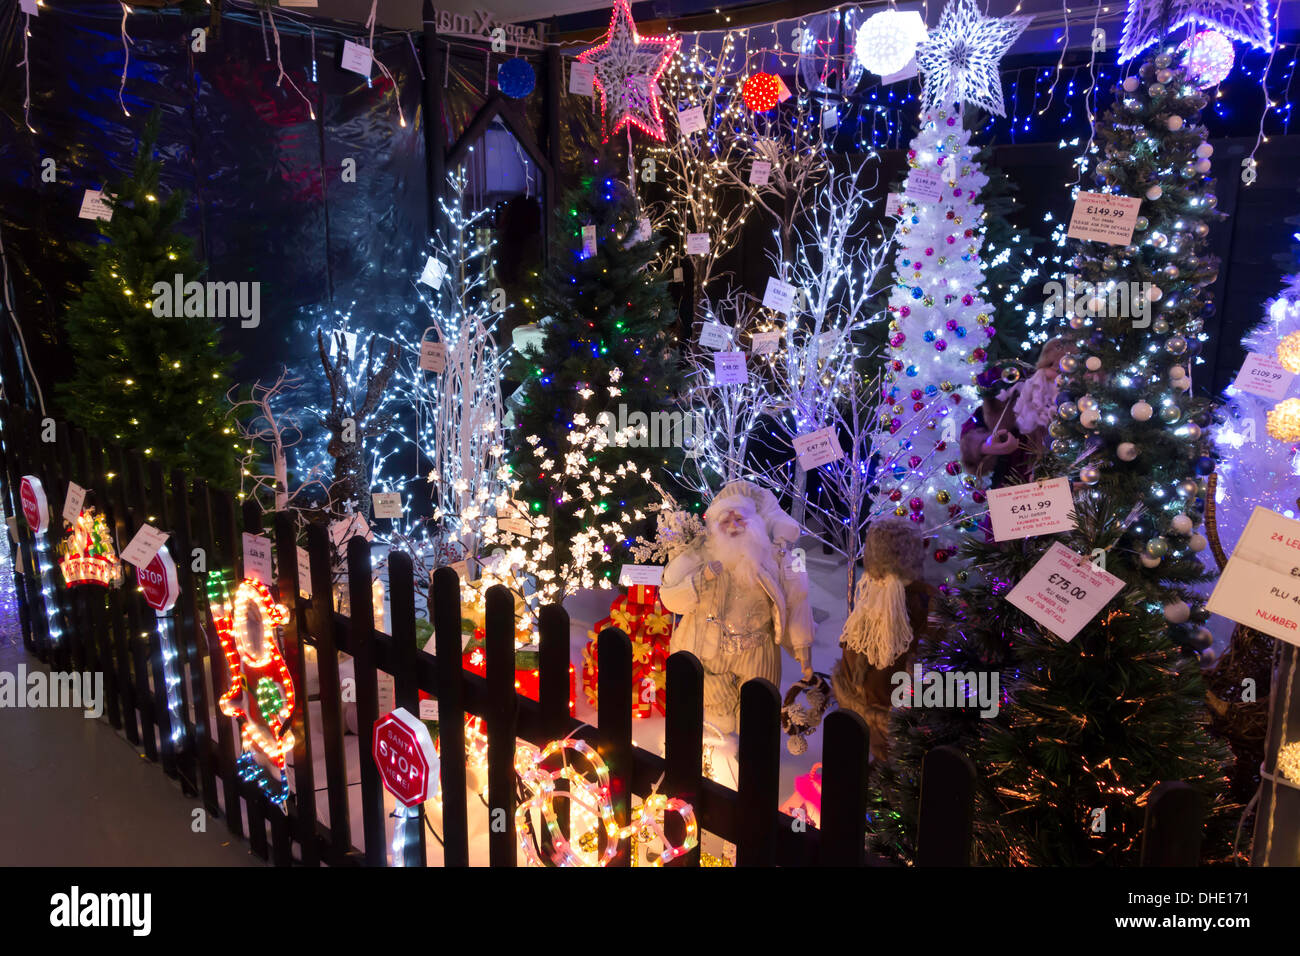 Garden decorations for sale - Display Of Illuminated Christmas Decorations For Sale In A Garden Centre